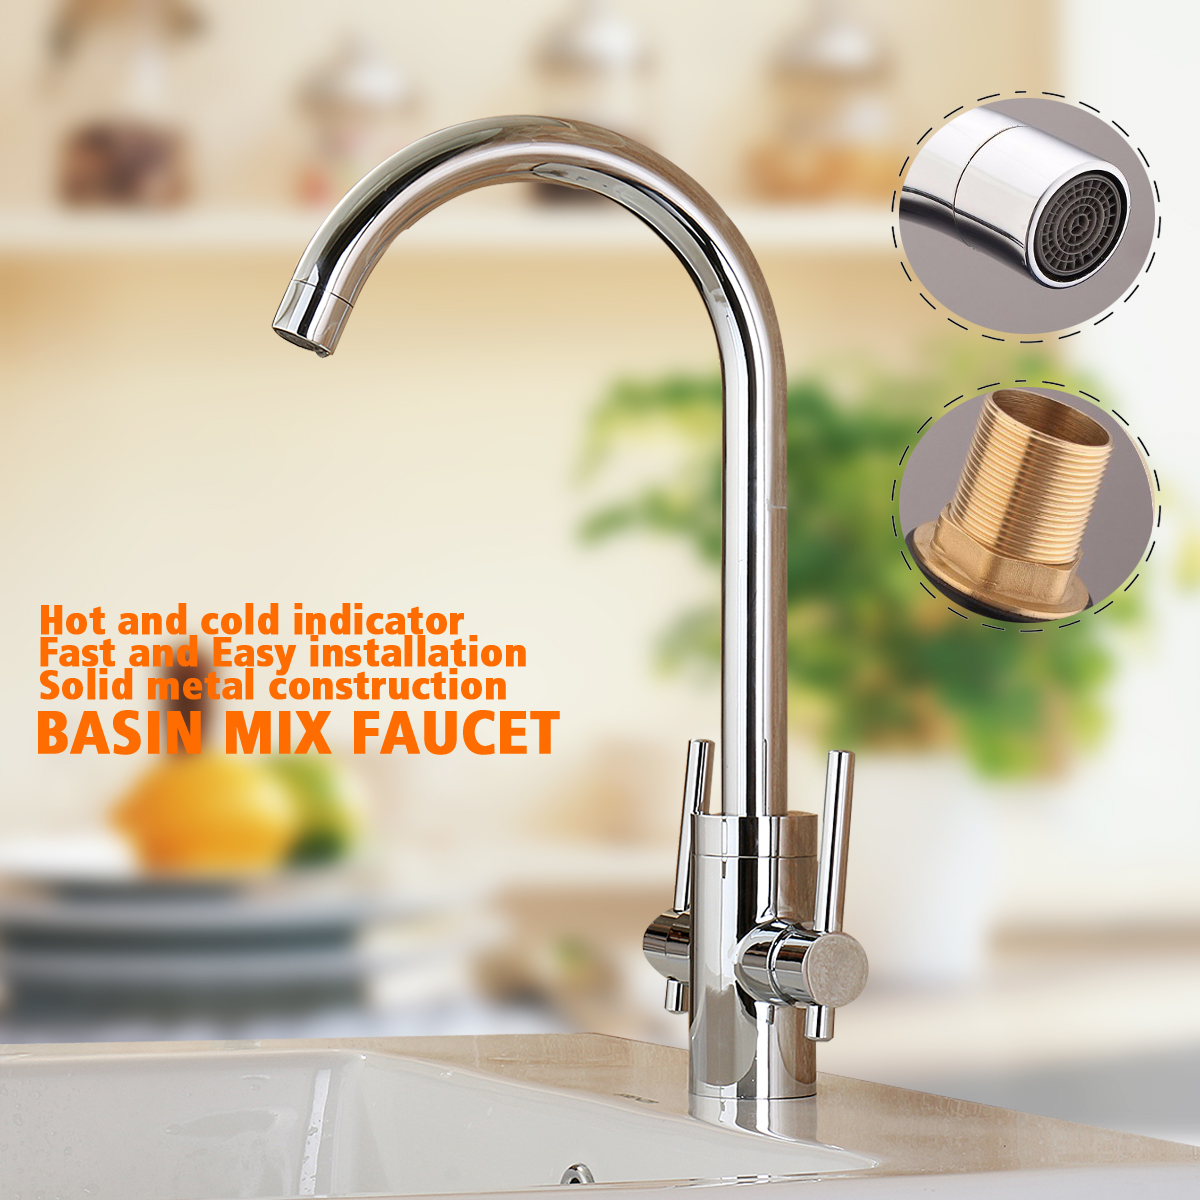 Kitchen Double Handles Hot And Cold Mixer Water Tap Basin Faucet Spout 360Rotation Chrome Polished Sink Water Tap Deck Mounted kitchen sink faucet deck mounted chrome polished basin faucet hot